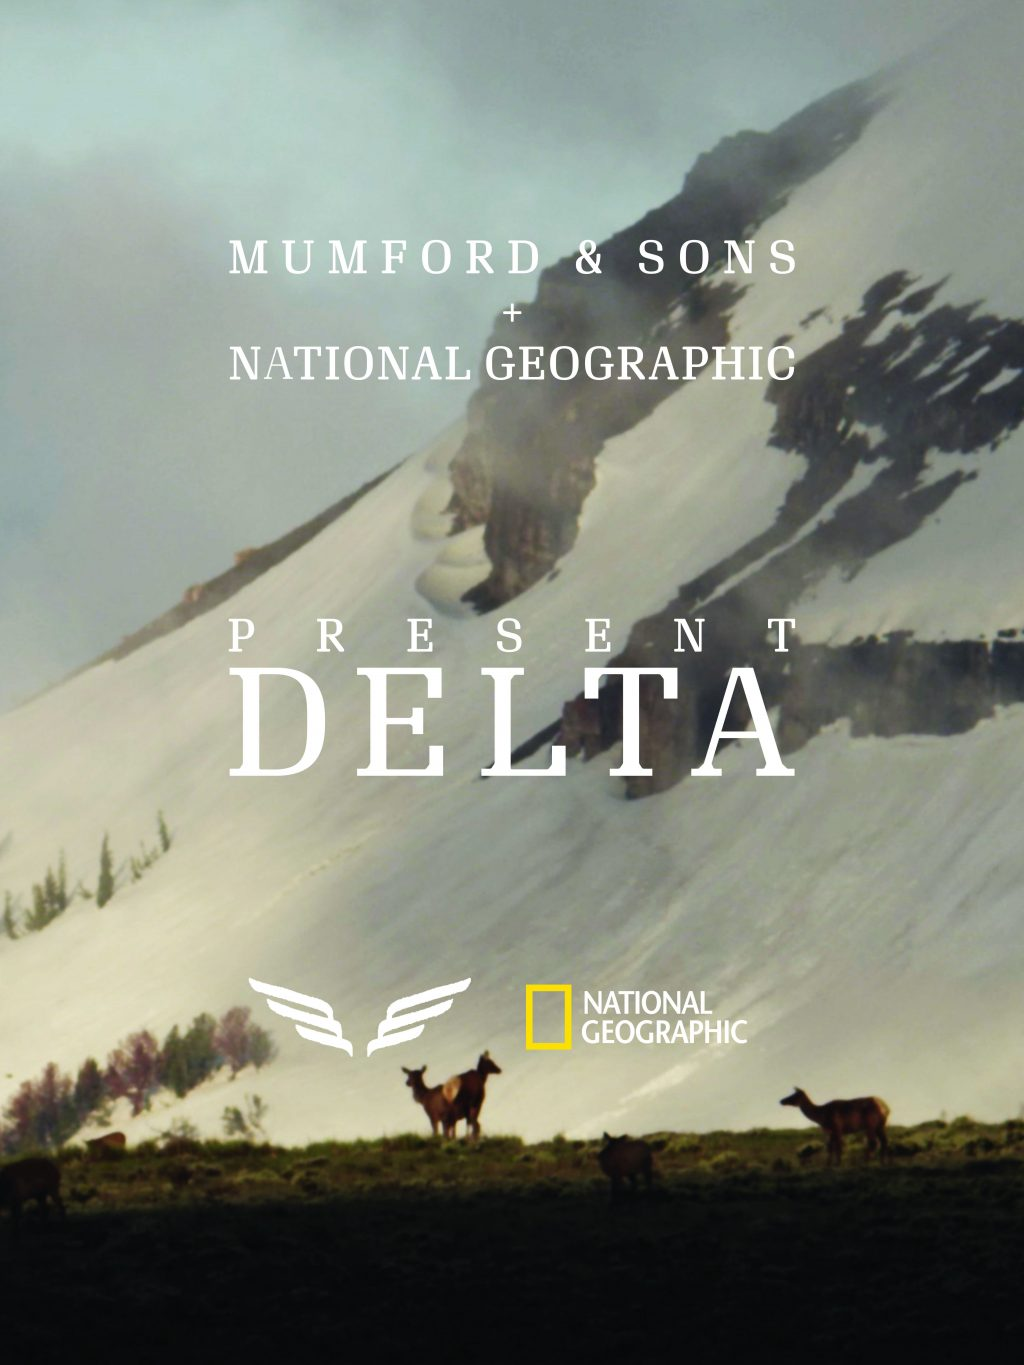 National Geographic Mumford & Sons album event